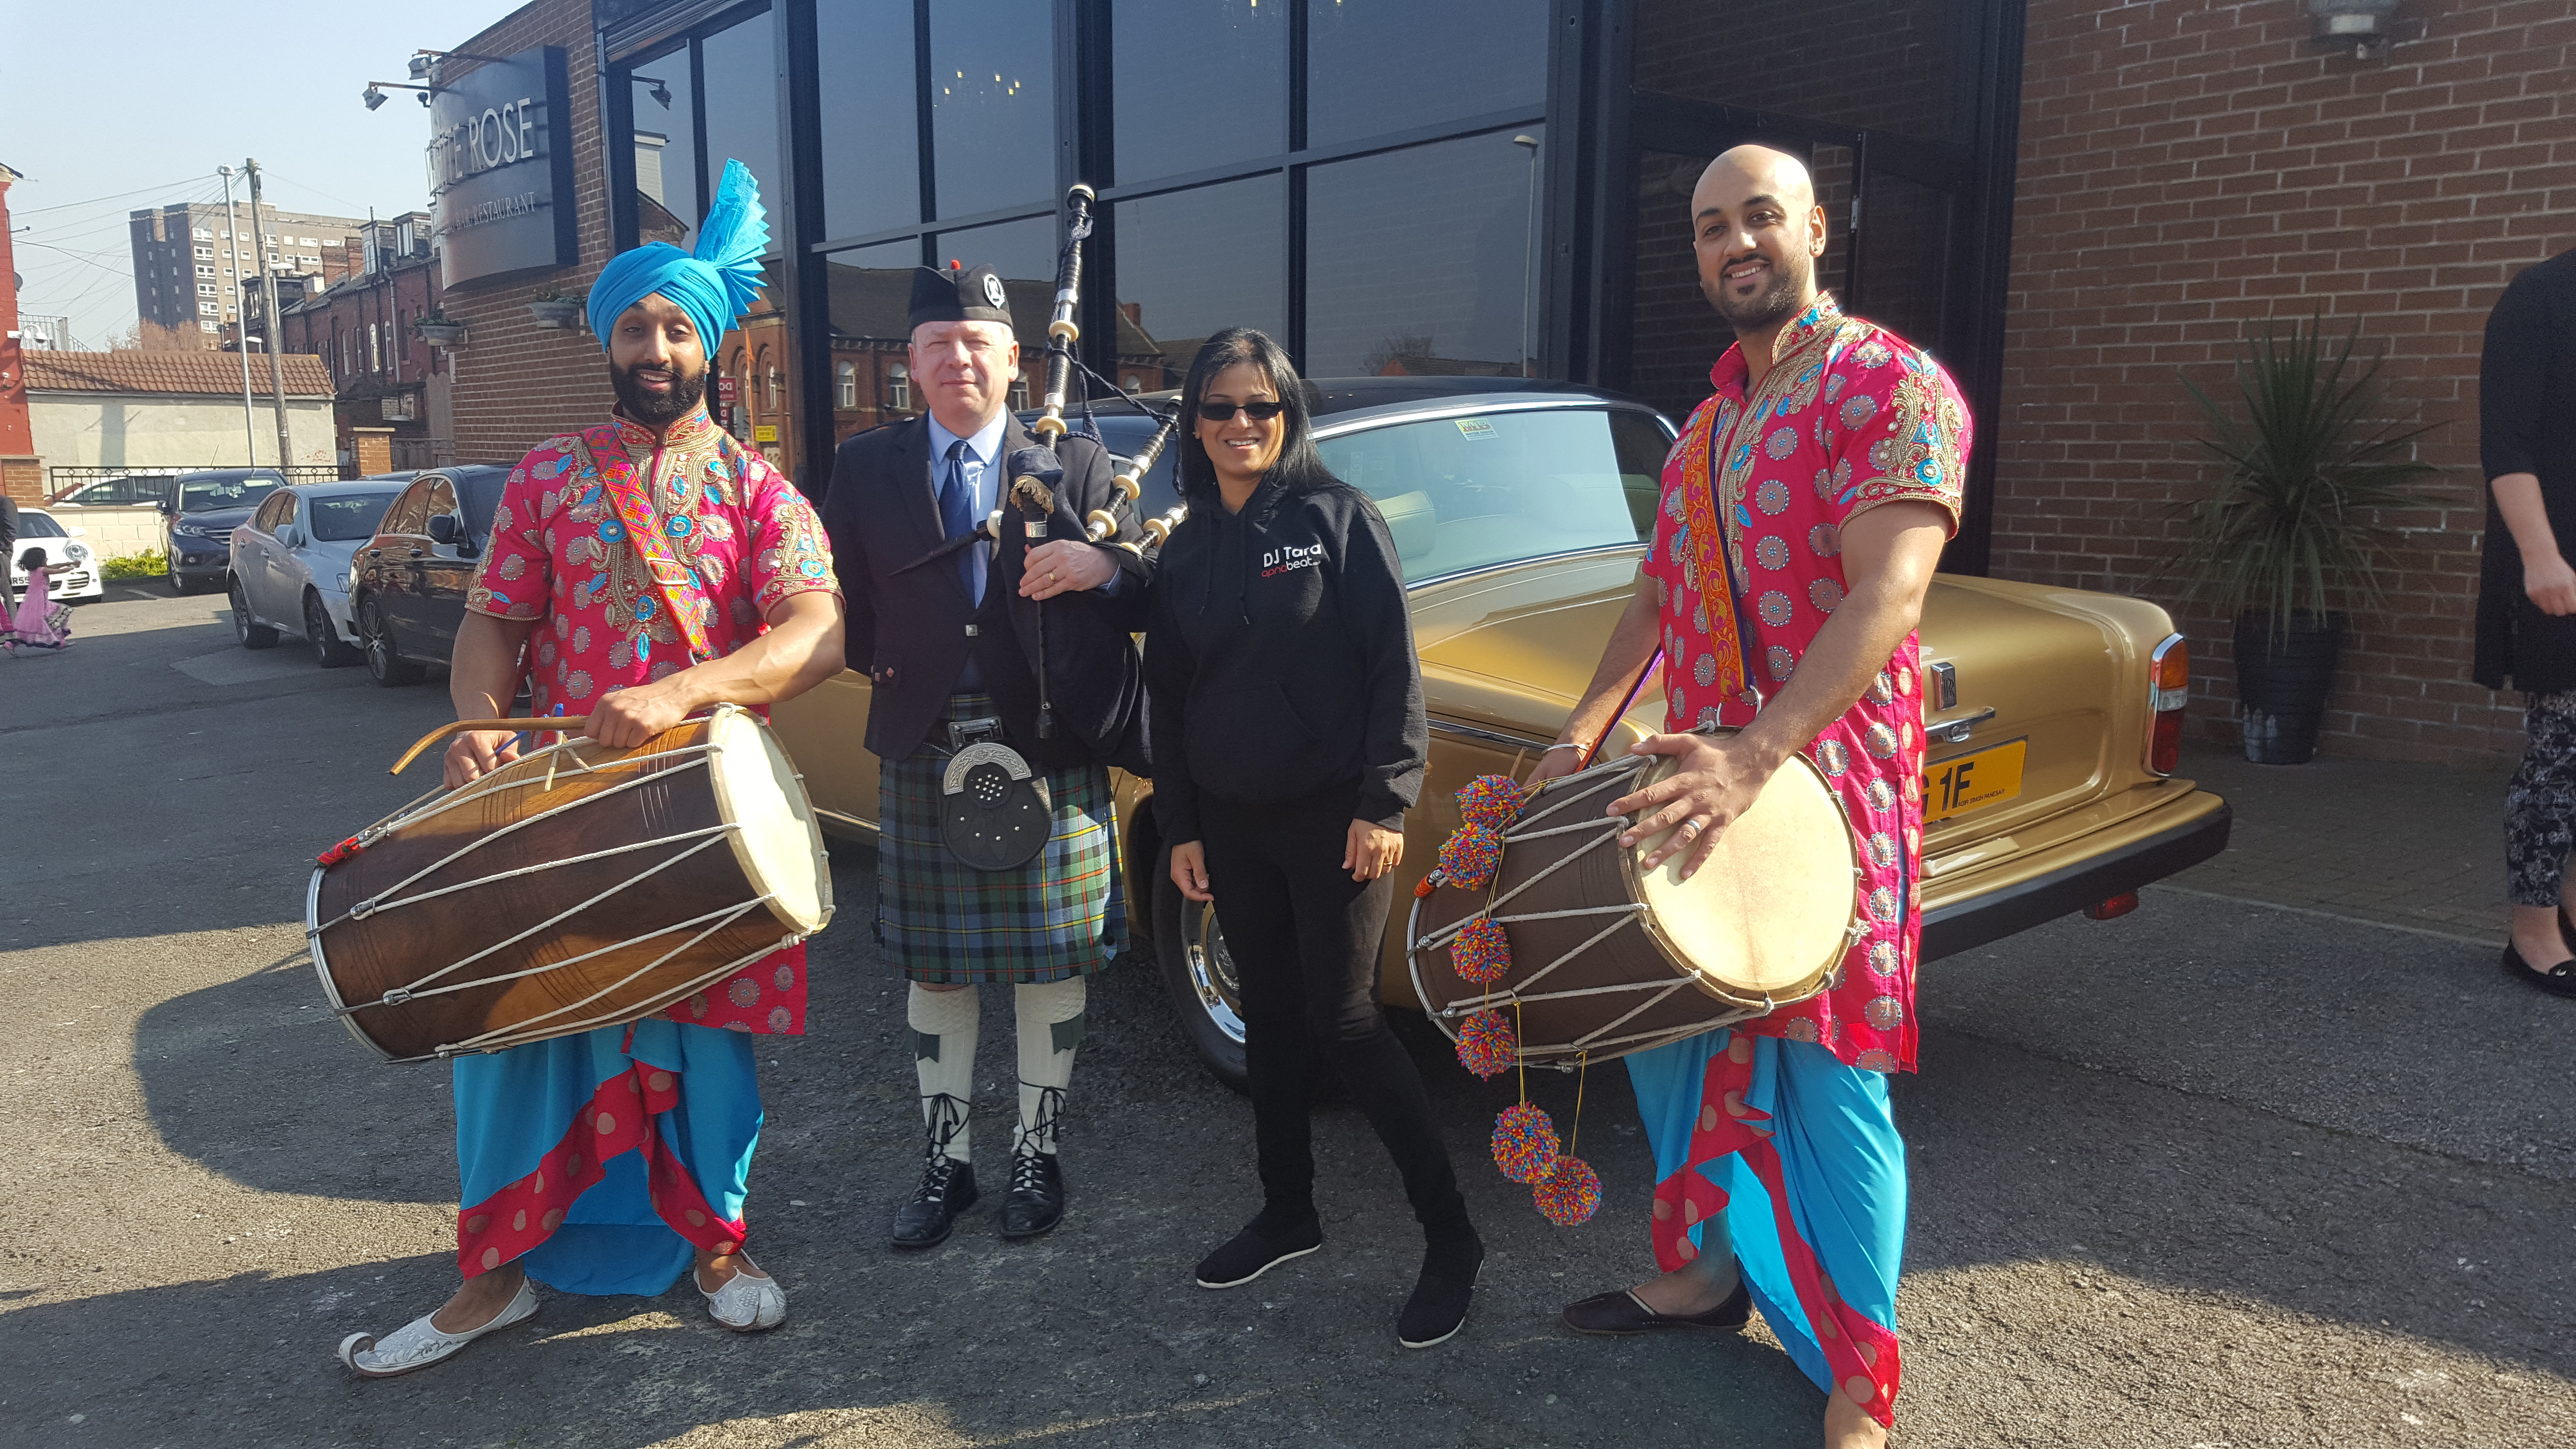 Dhol and Bagpipes